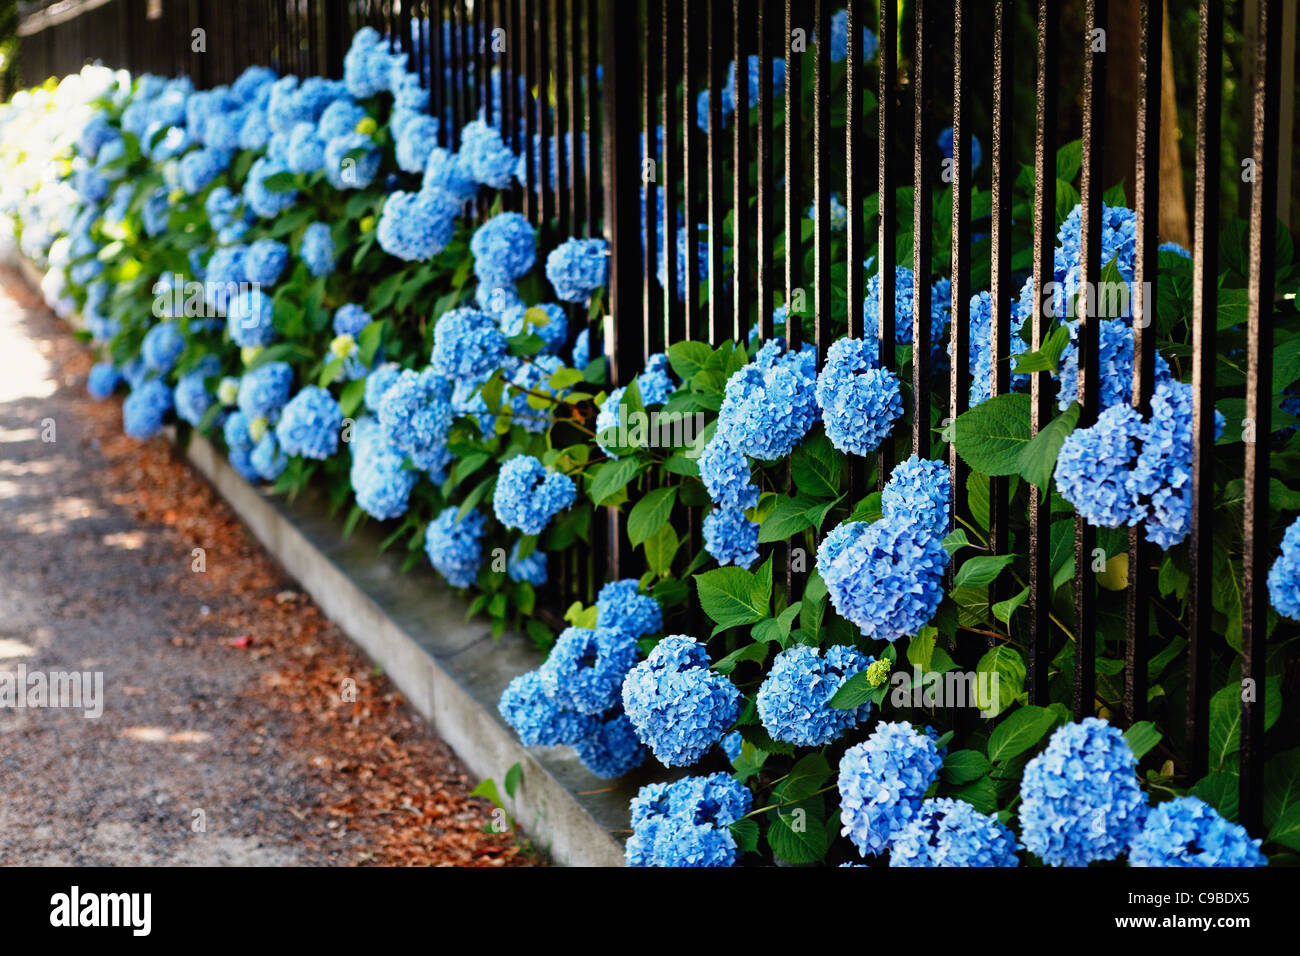 Blue Hydrangea Flowers Poking Through a Fence, Bellevue Avenue, Newport, Rhode Island - Stock Image